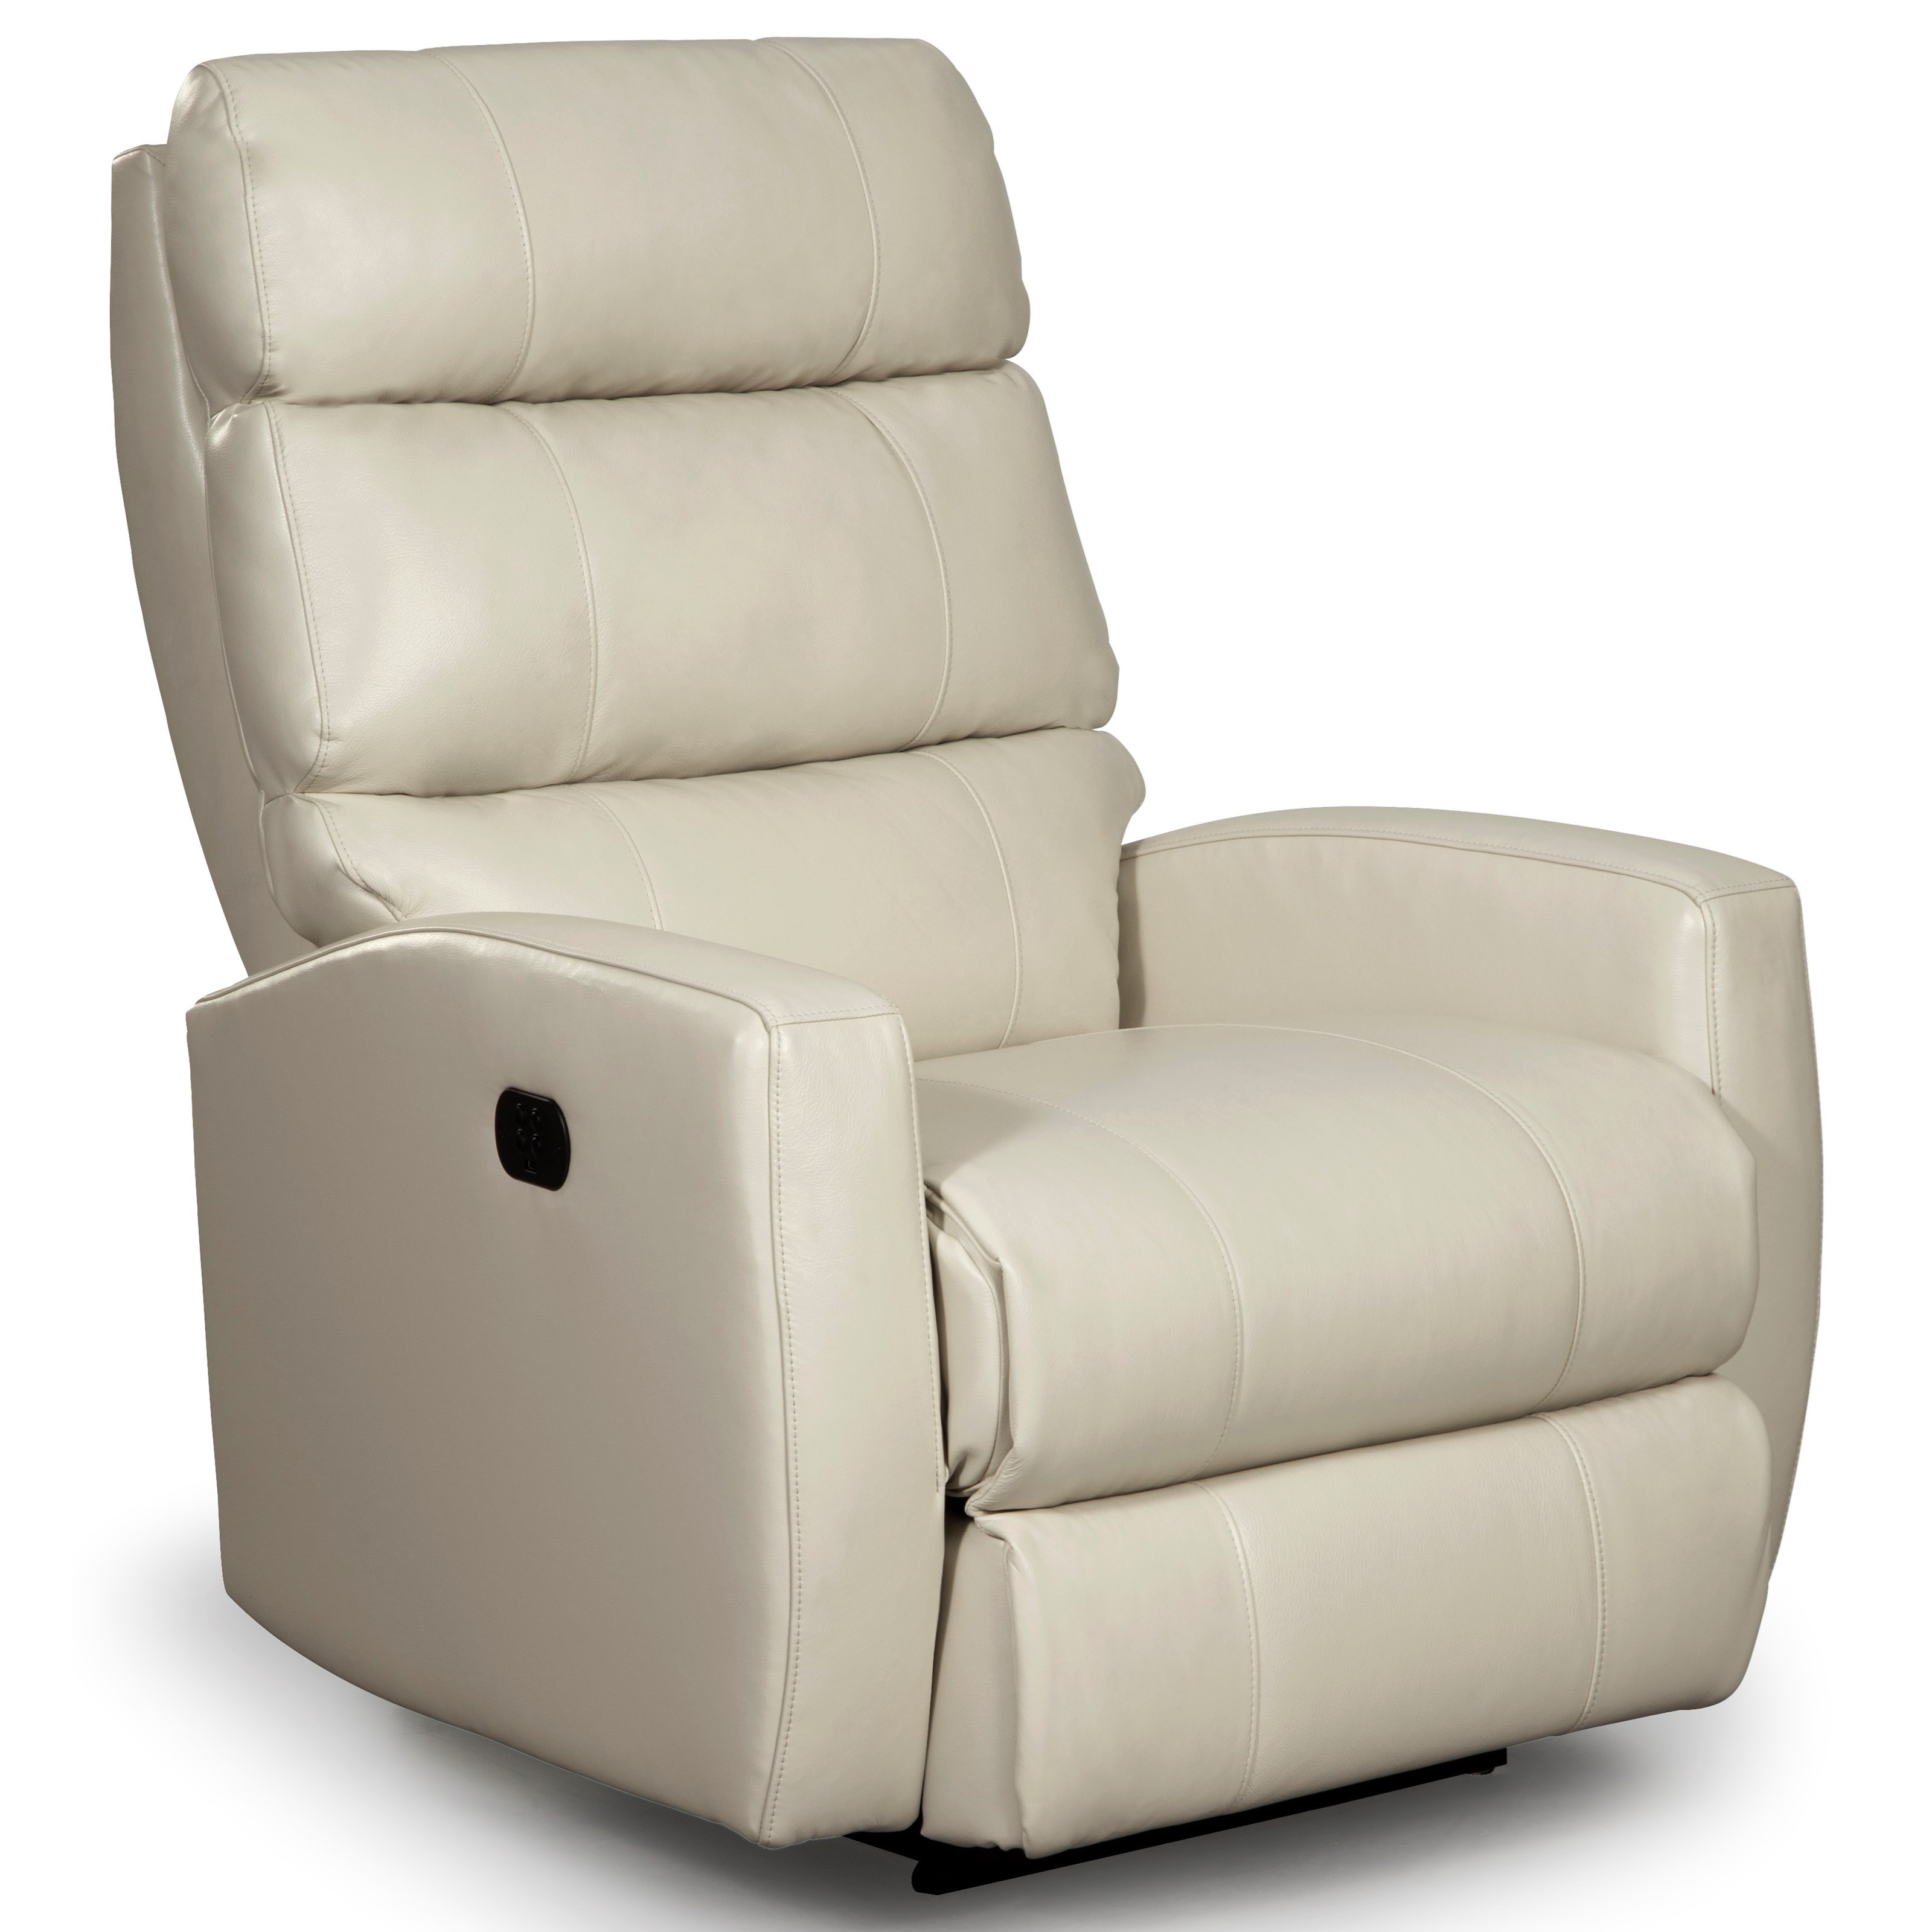 Hillarie Swivel Glider Recliner by Best Home Furnishings at Baer's Furniture